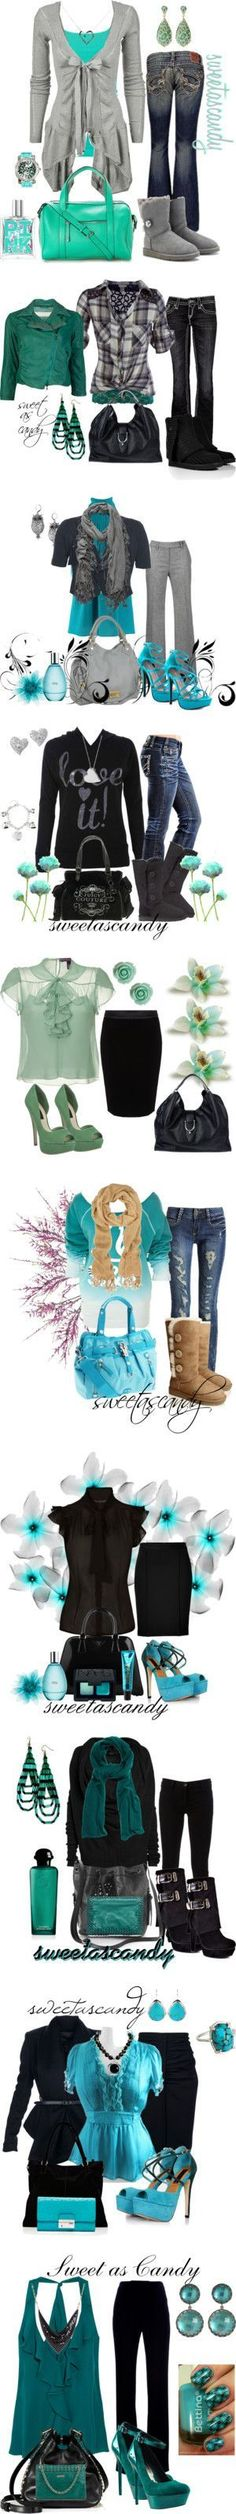 turquoise, gray and black by sweetlikecandycane on Polyvore